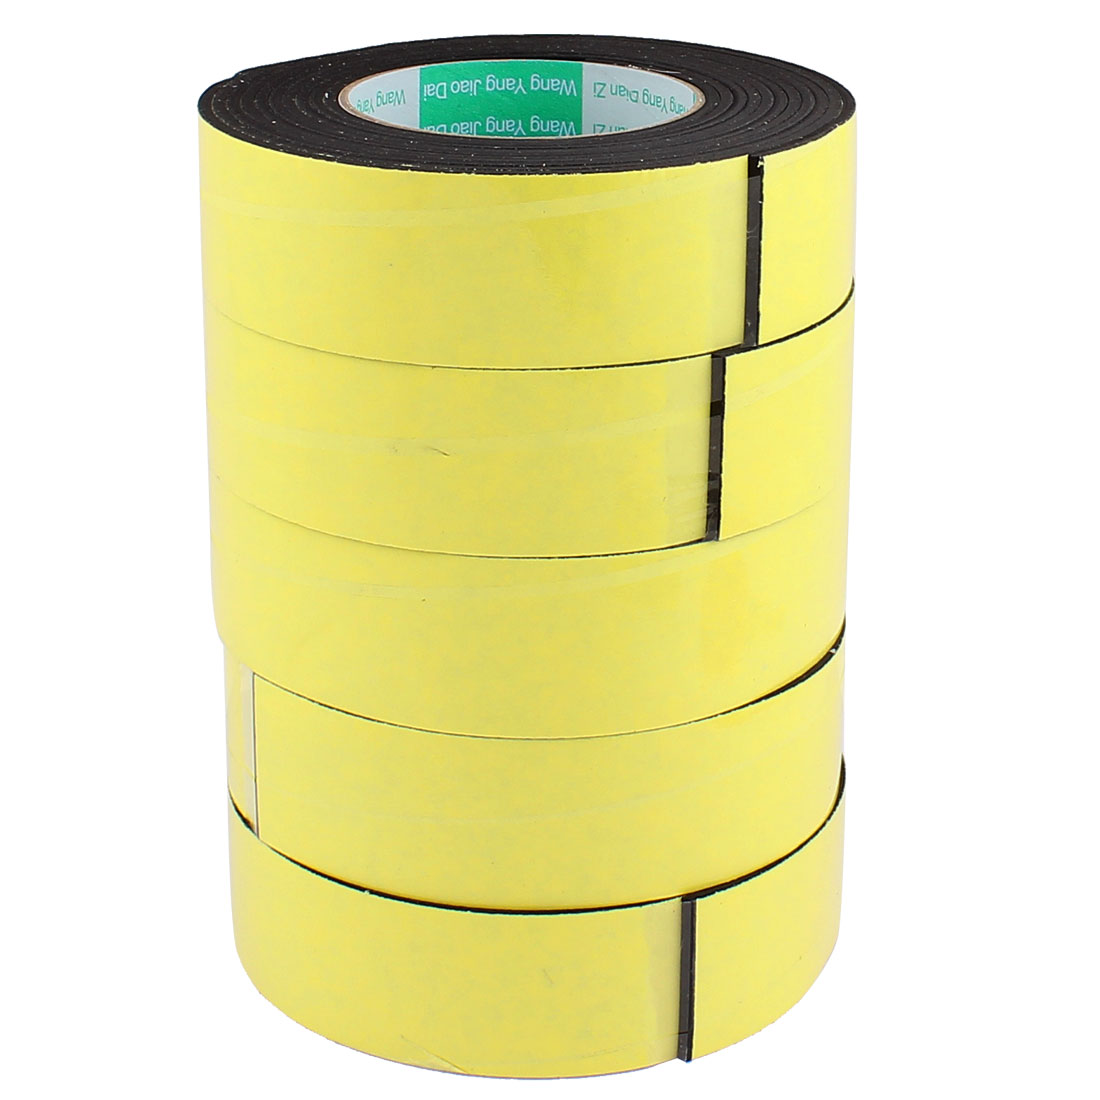 5Pcs 4CM Width 4M Length 3MM Thick Single Sided Sealing Shockproof Sponge Tape